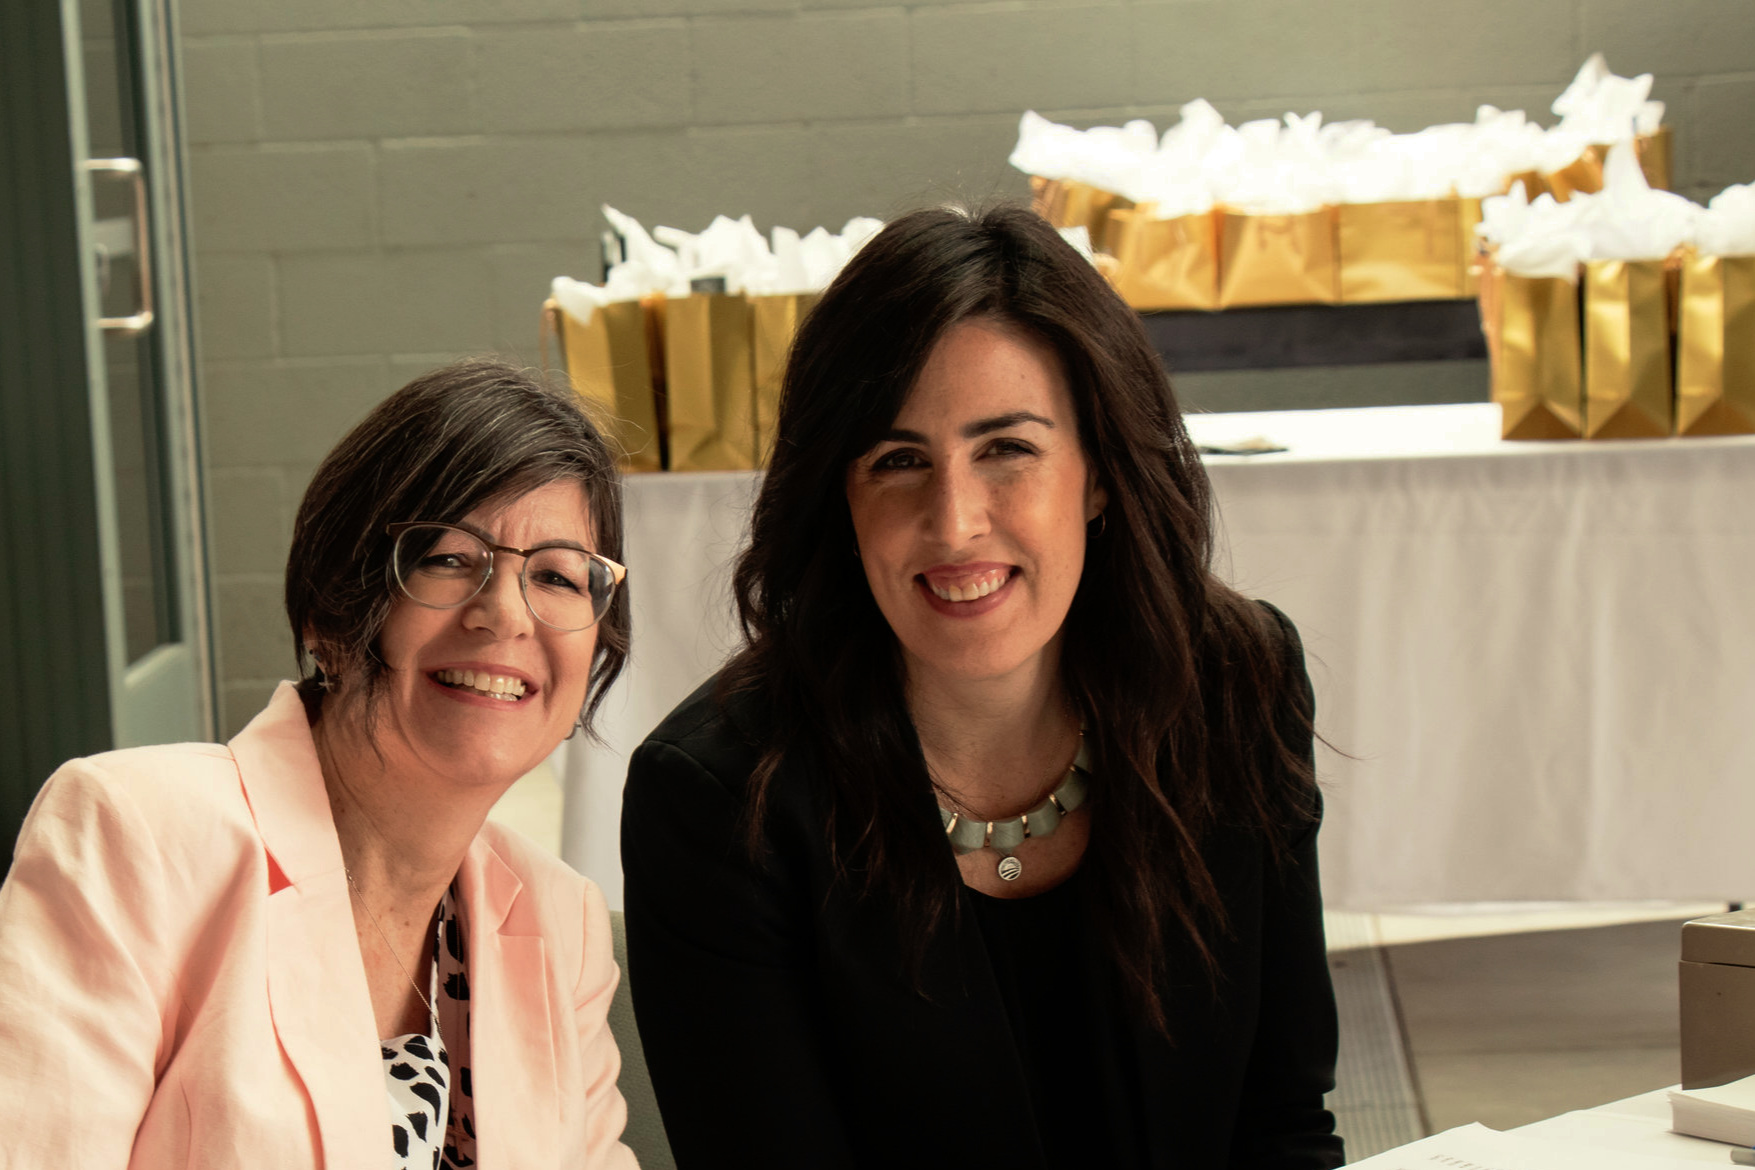 Suzanne+and+Erin+Finley-volunteers+CLF-2018+spirit+of+giving.jpg